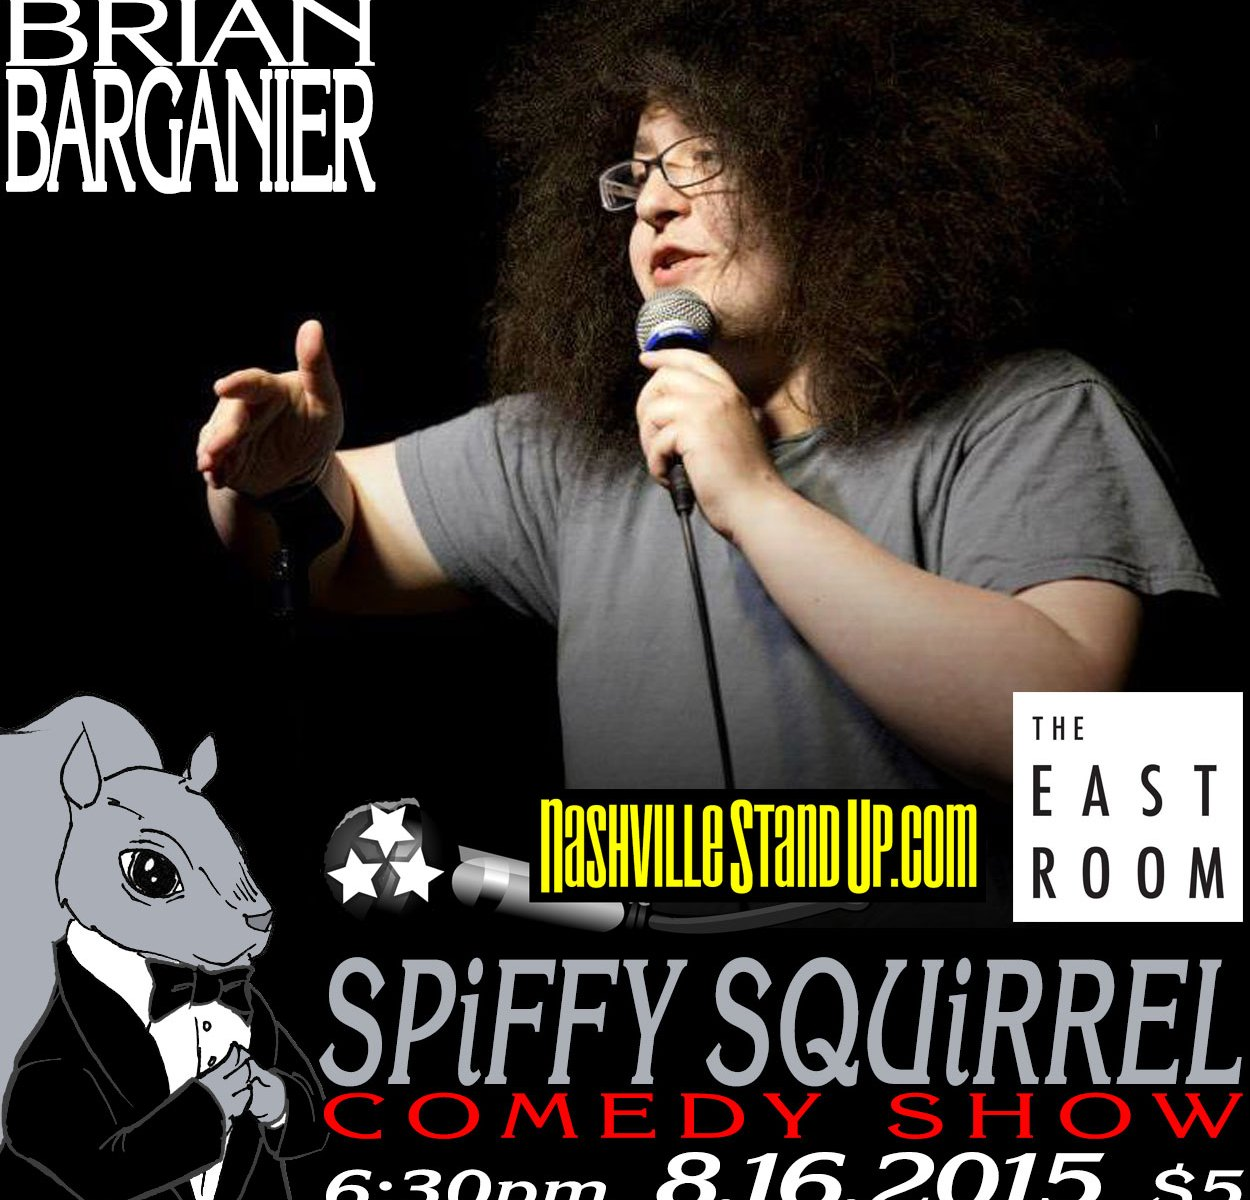 8/16/2015: Brian Bargainer w/ Mike Shustock and more at Spiffy Squirrel stand-up comedy show at The East Room.